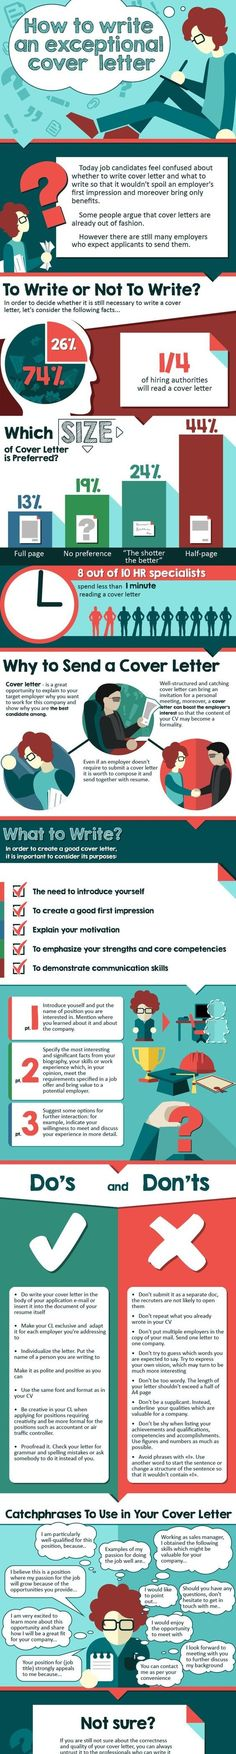 COVER LETTER WRITING SERVICE FOR JOB Get Expert Help With Coverletter Writing For